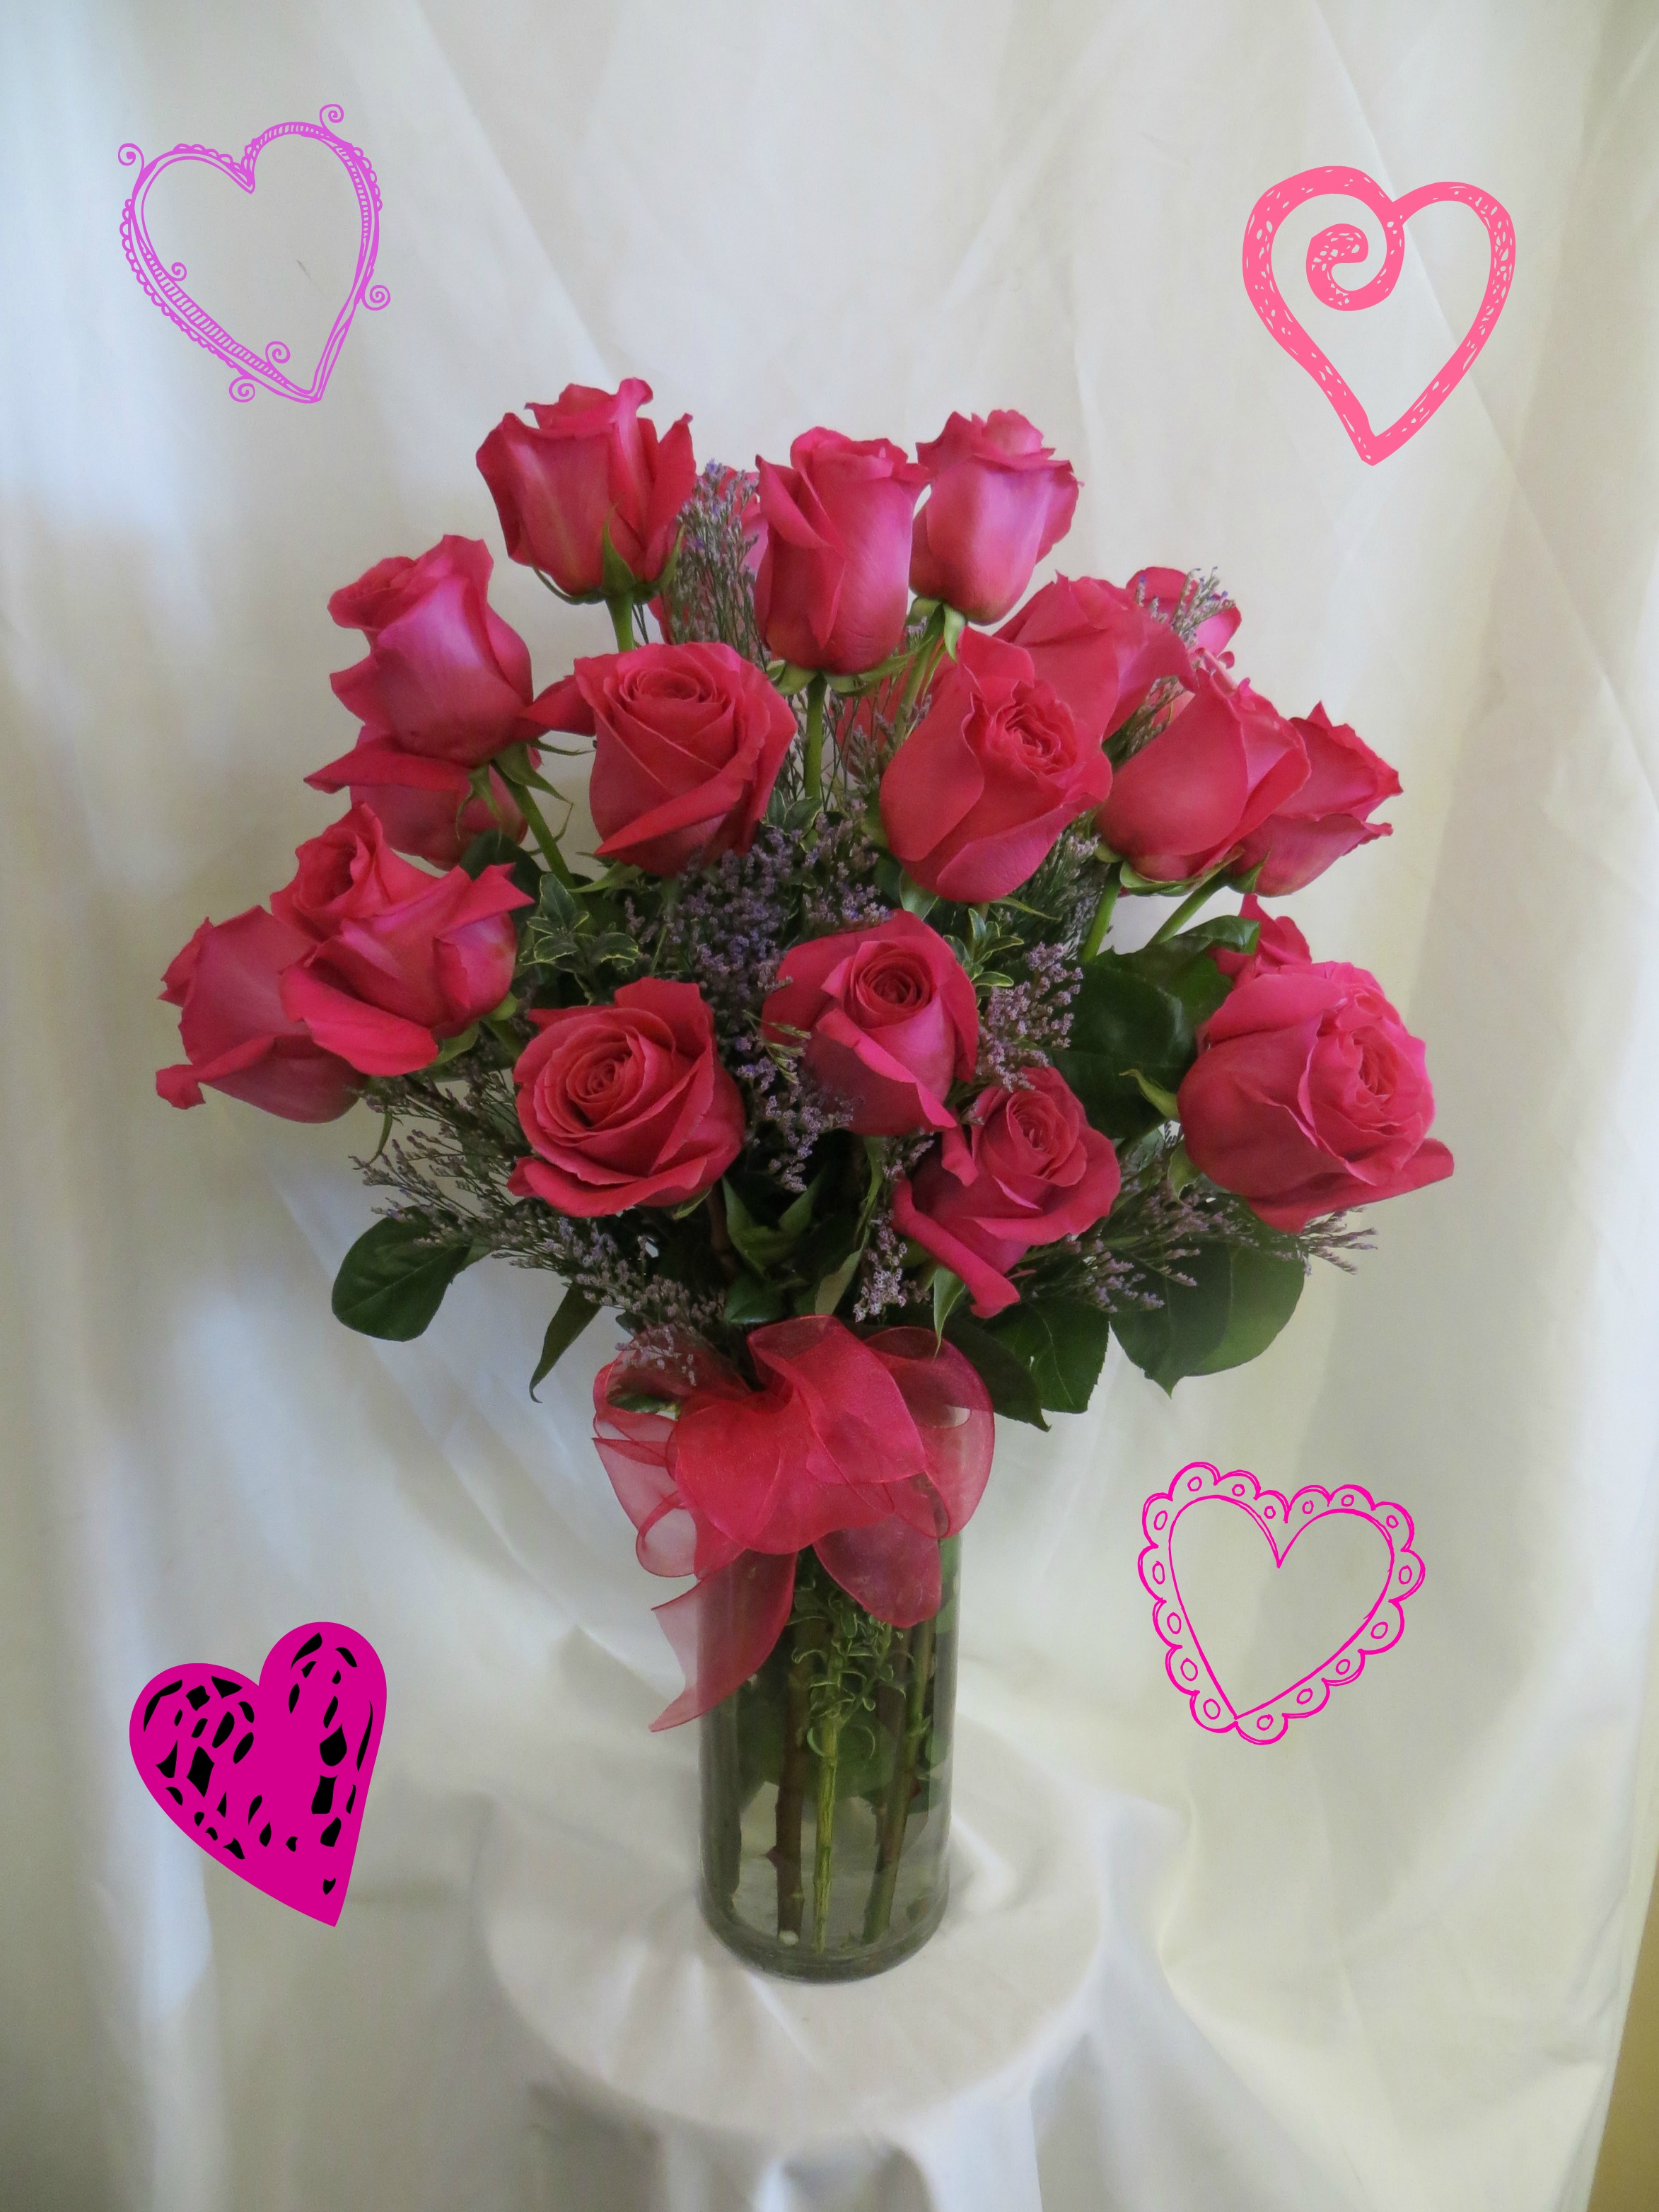 5 Romantic Ideas For Couples Plus Roses For Valentines Day ...